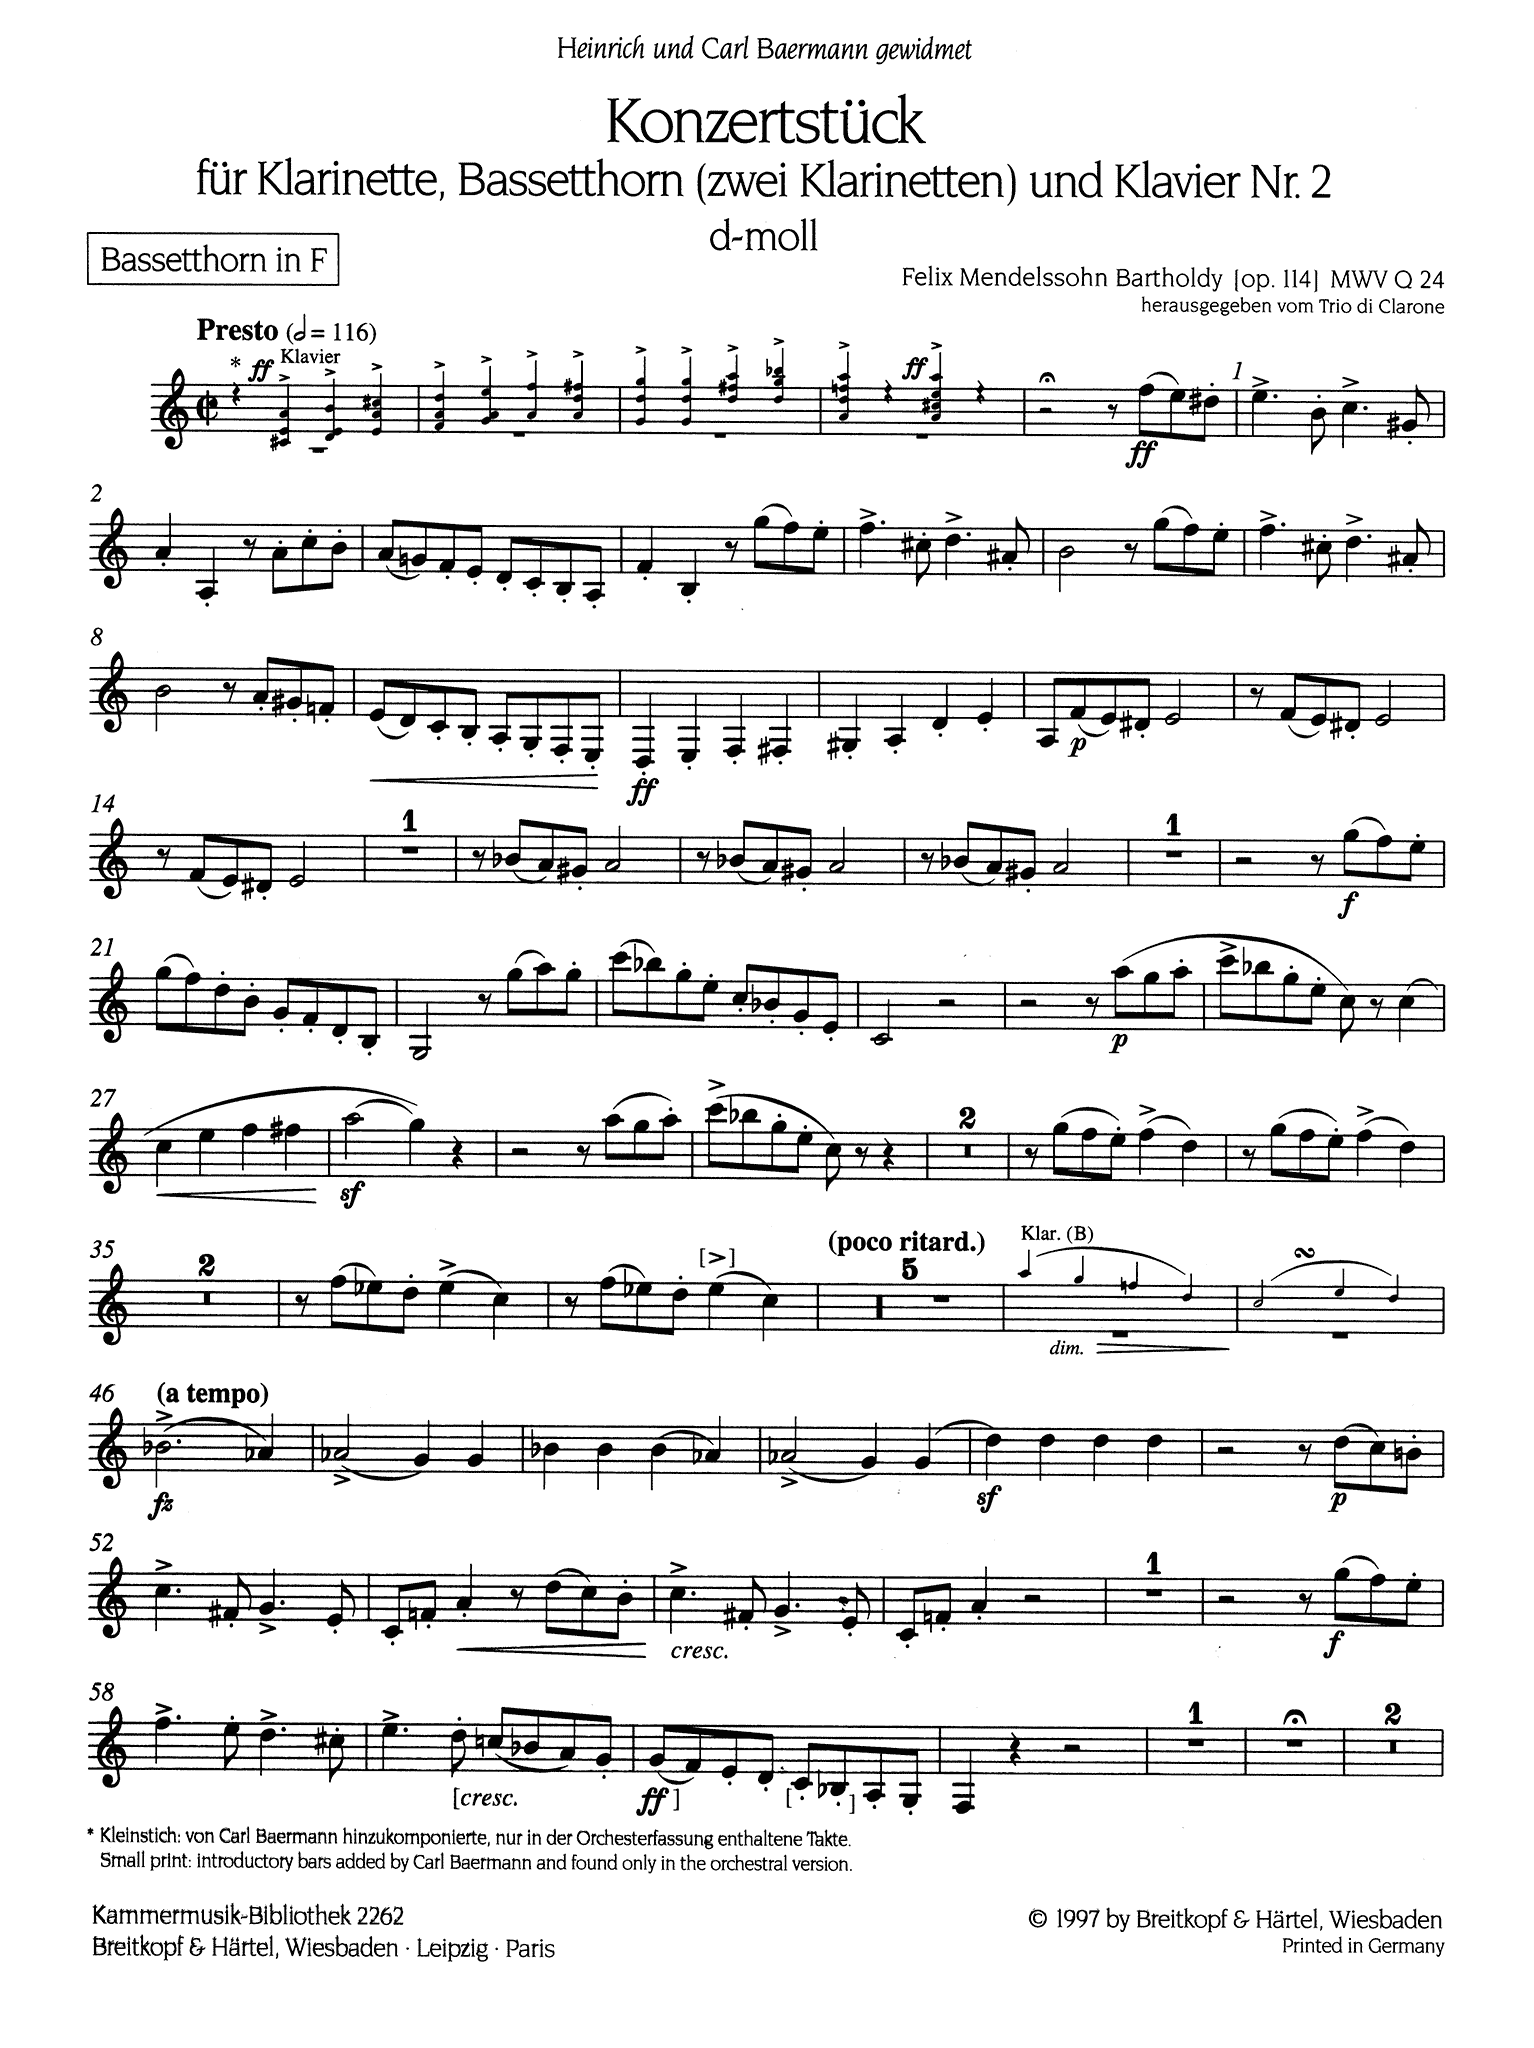 Concertpiece No. 2 in D Minor, Op. 114 Basset Horn solo part